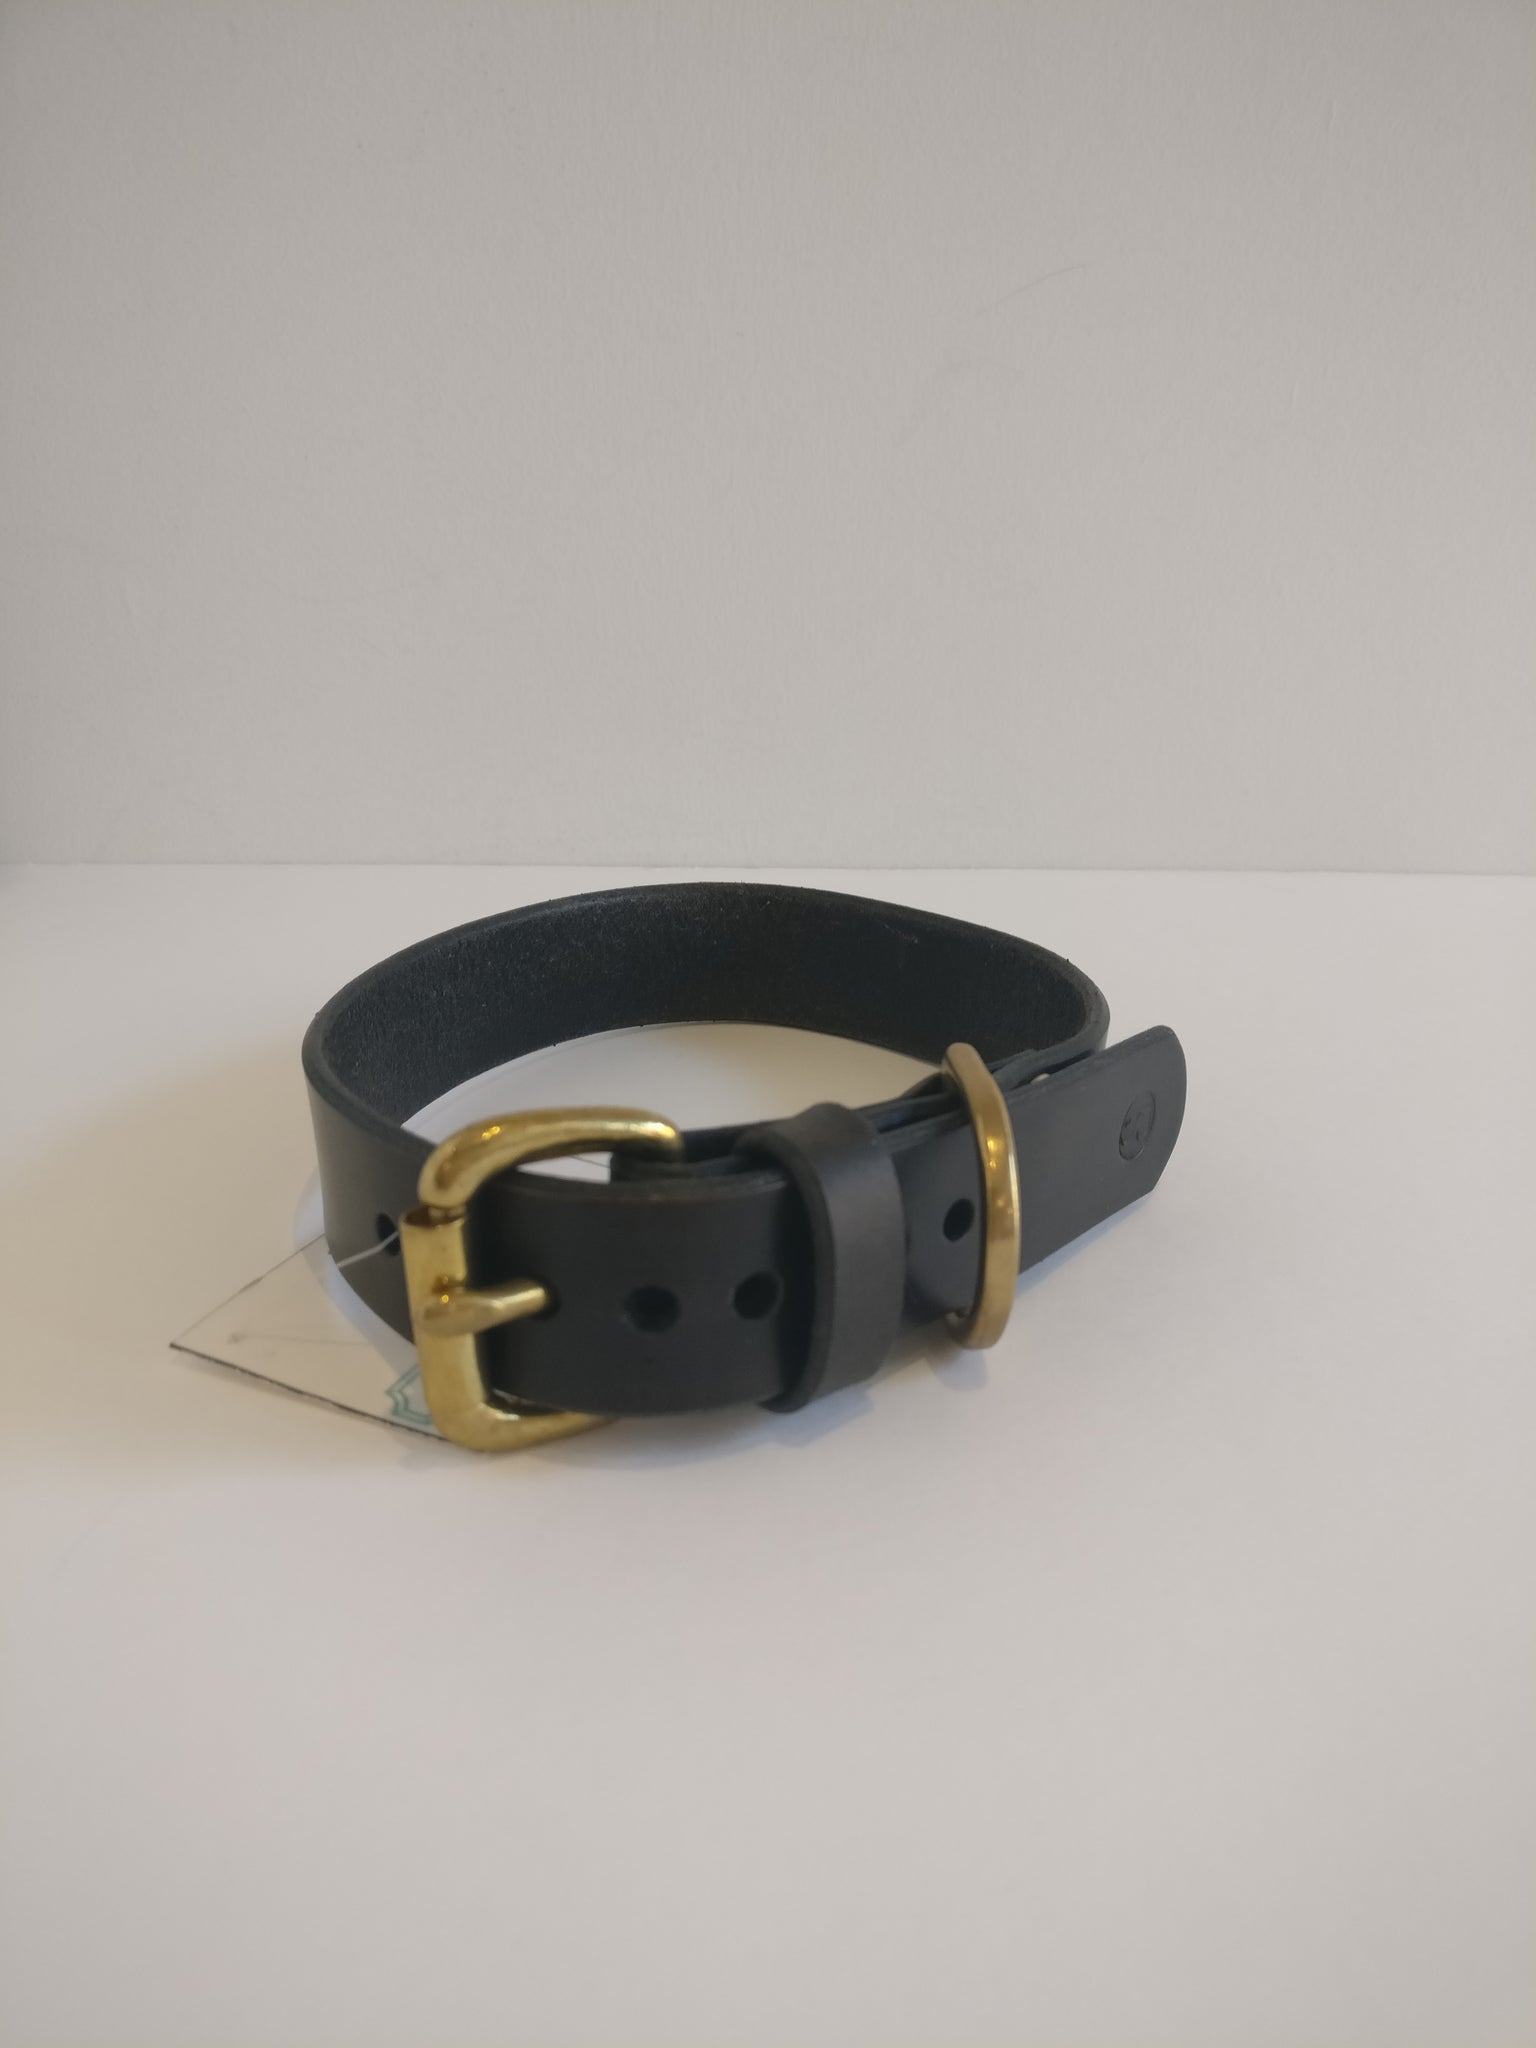 Medium Dog Collar - Black/Brown